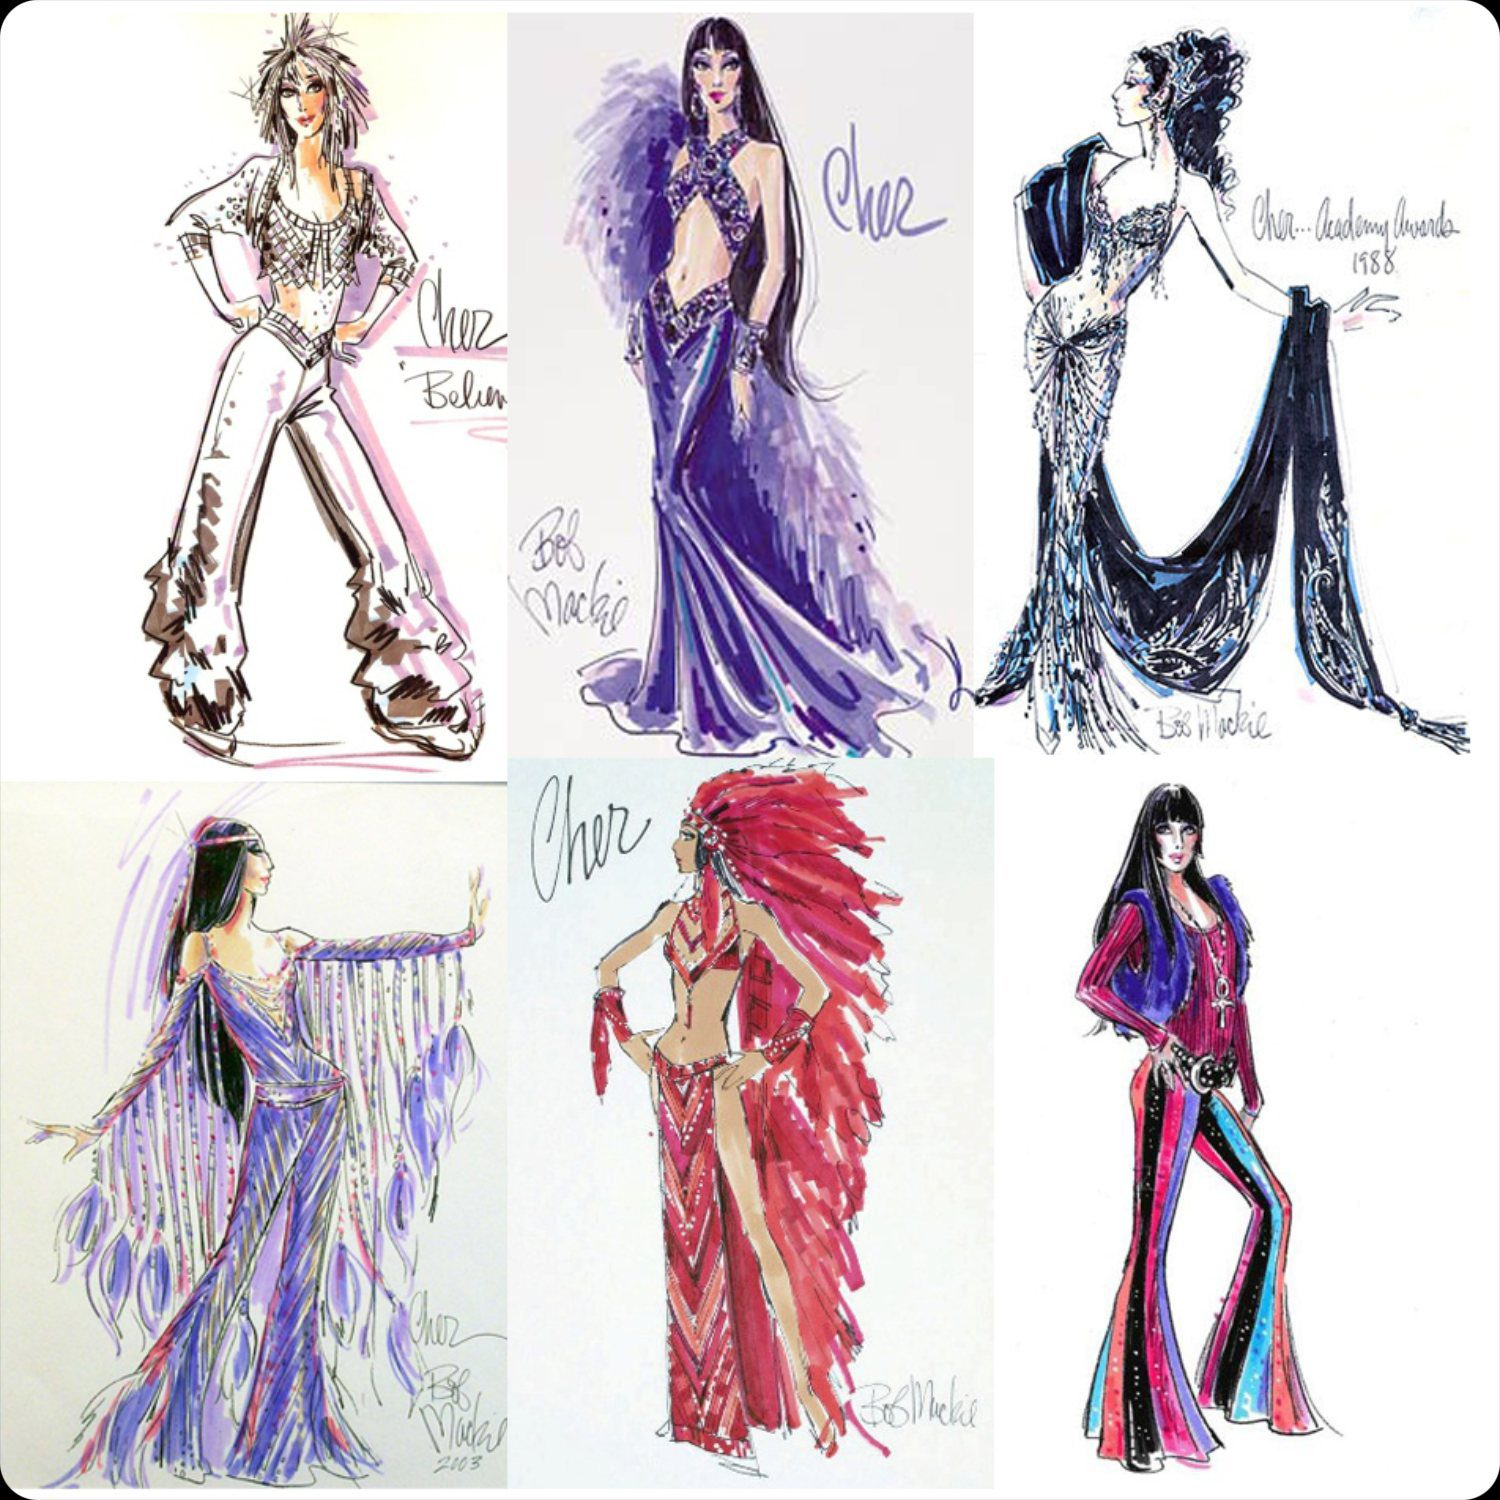 Costumes of Bob Mackie for Cher 1988-2003